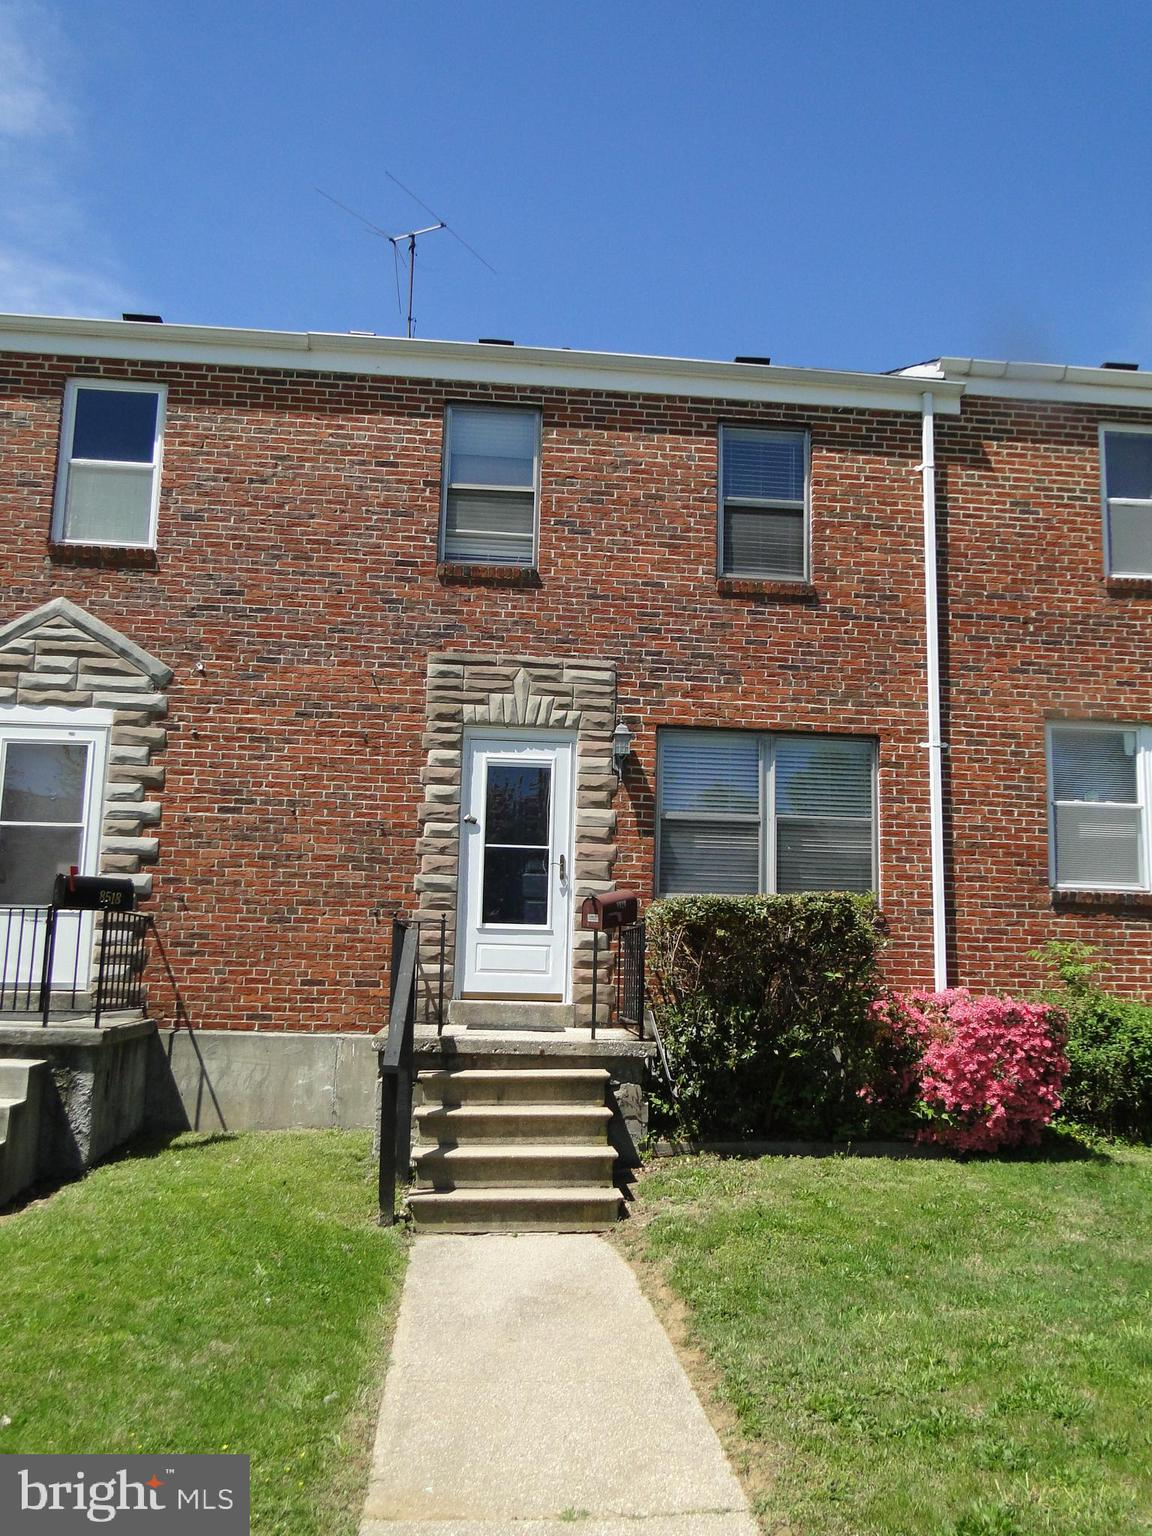 3 Bedroom all brick home with gleaming hardwood floors and fresh paint make this home move in ready . All major systems updated .  Parking space off alley leads to kitchen. Close to shopping and convenience centers